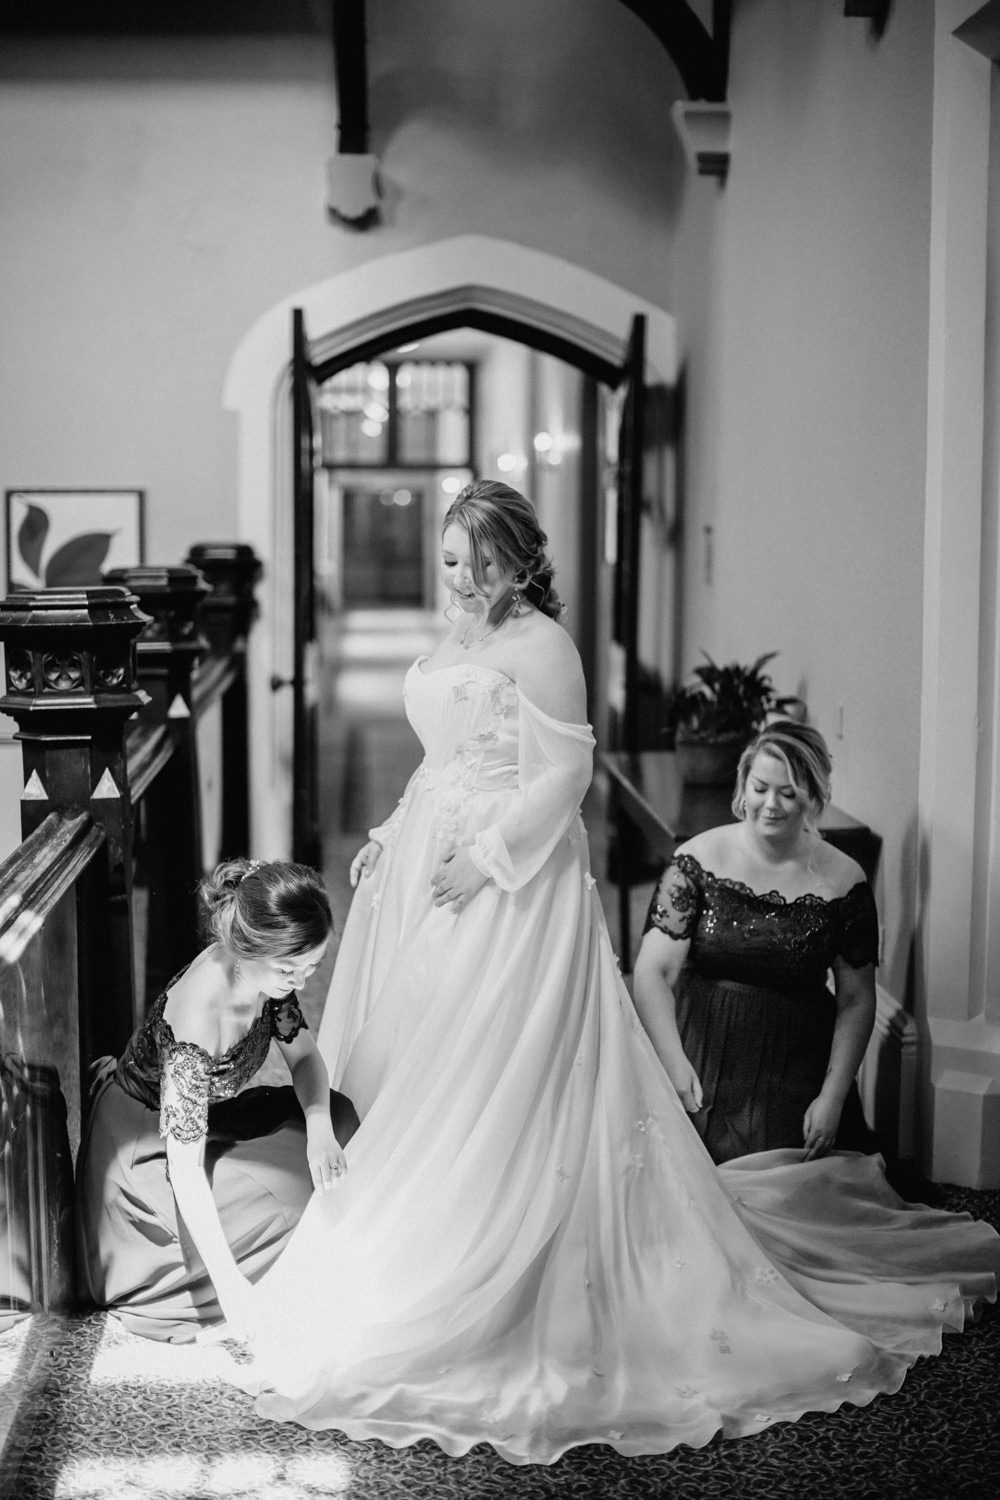 Tulle Sleeves Train Princess Dress Gown Bride Bridal Tortworth Court Wedding Sanshine Photography